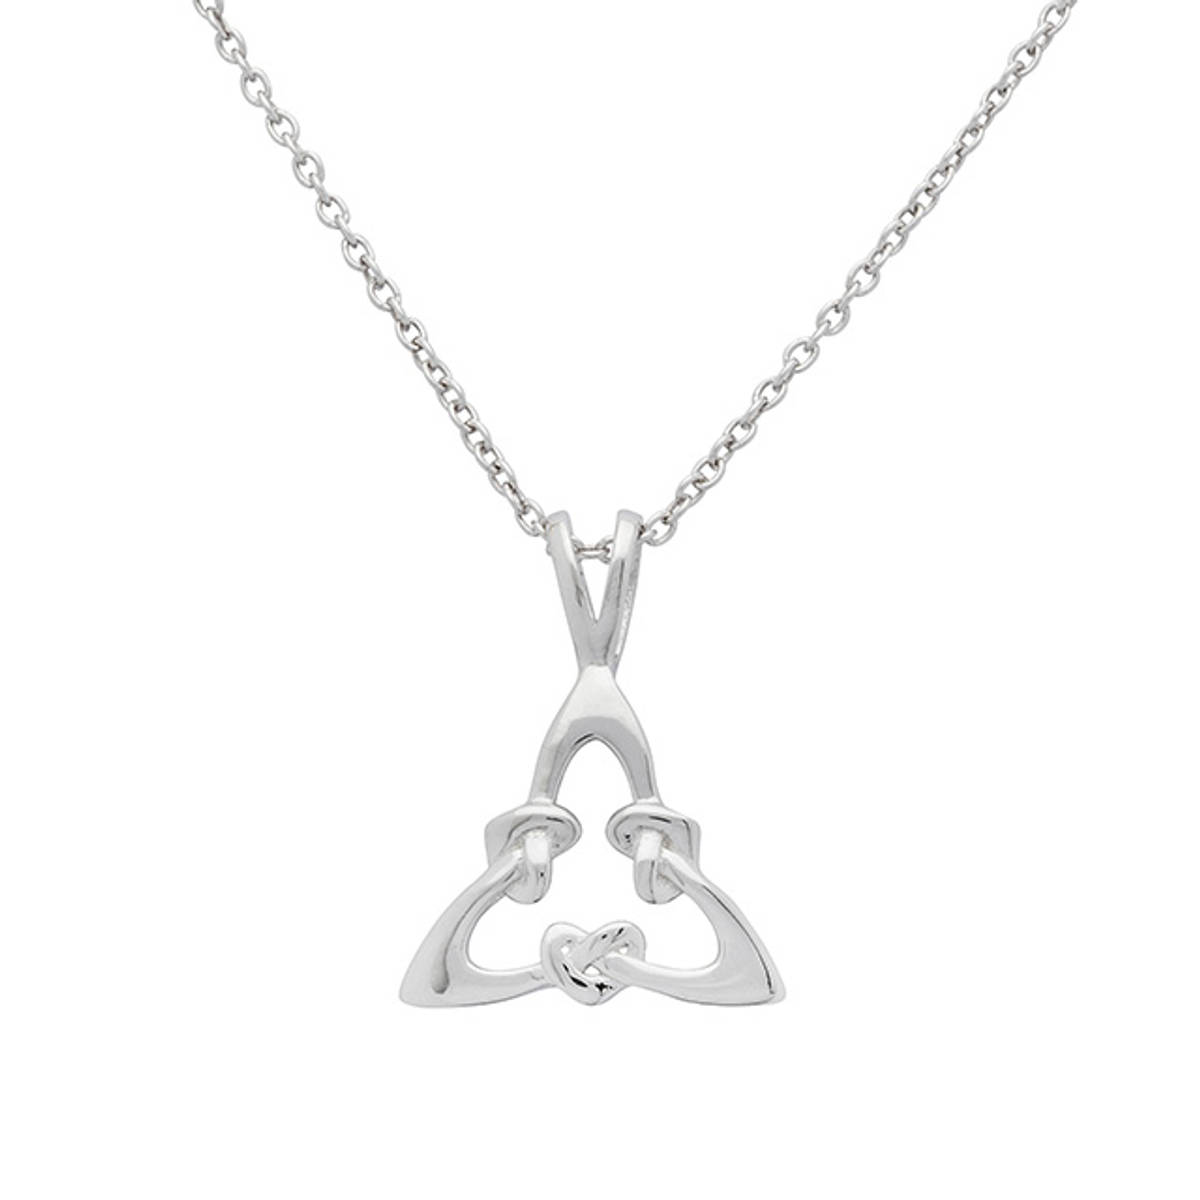 Sterling Silver Triangular Celtic Heart Knot Pendant  Size: 15mm Chain: 18 inche